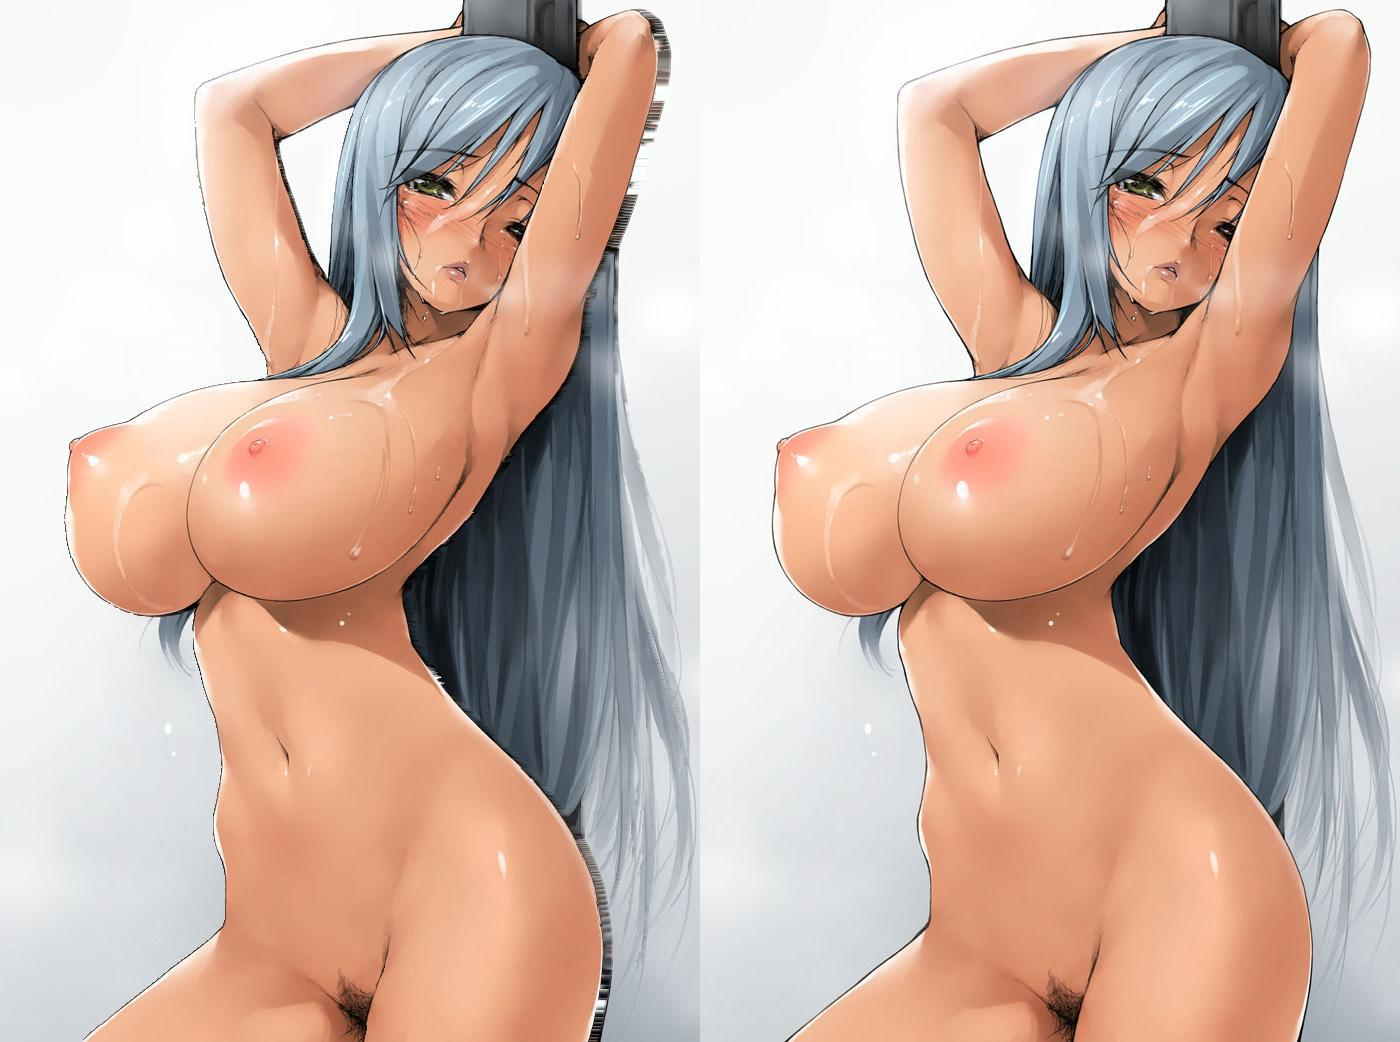 3d anime nude pictures porncraft movies